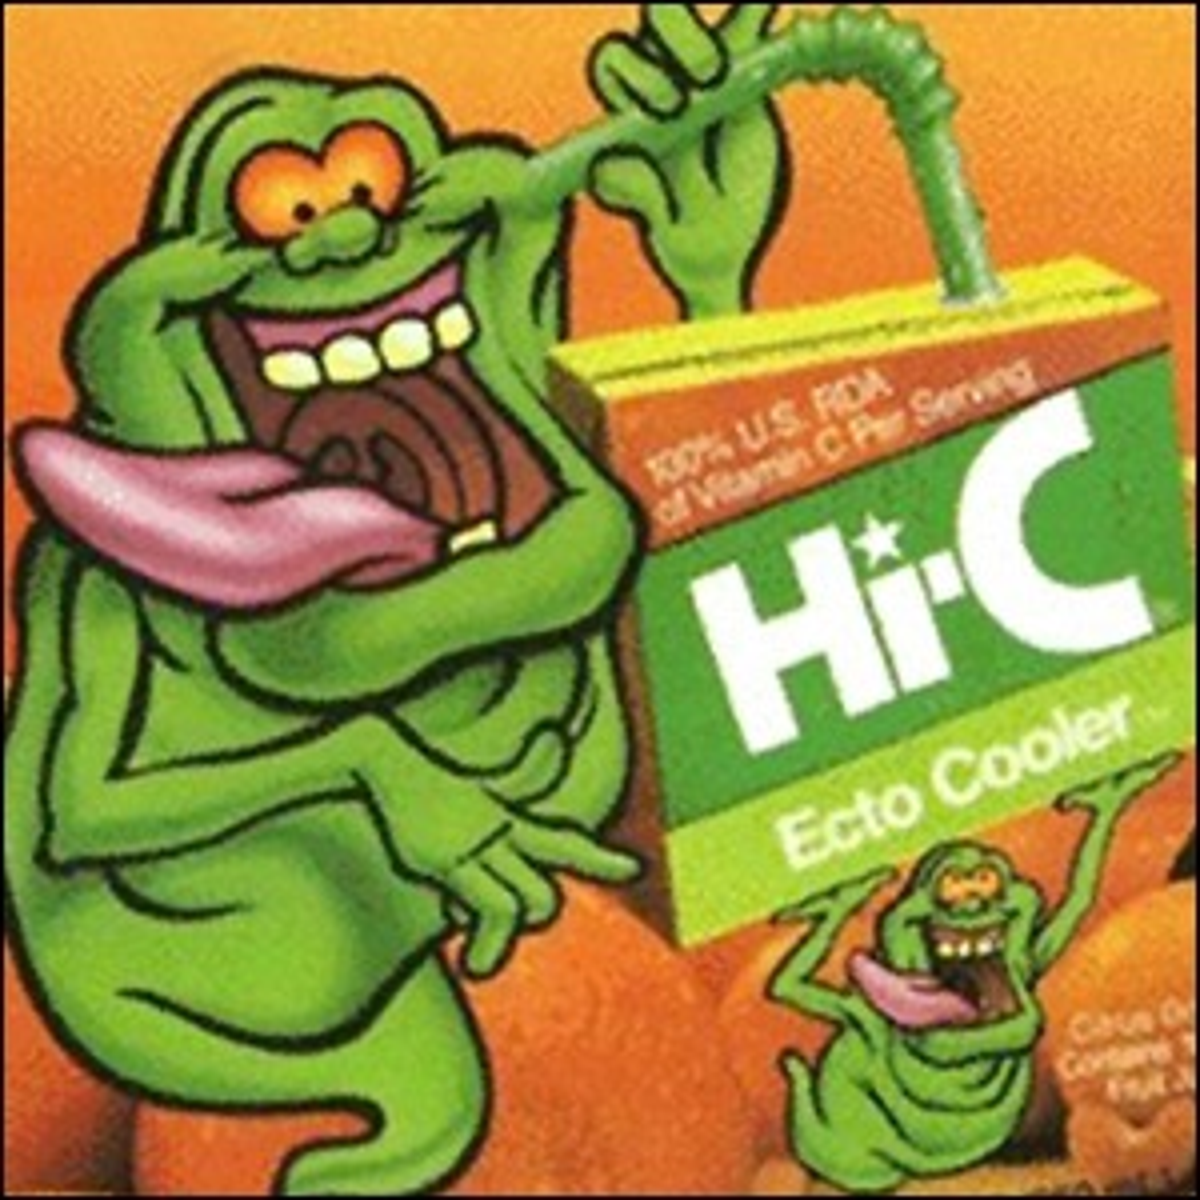 The front cover artwork for Hi-C Ecto Cooler drinks.